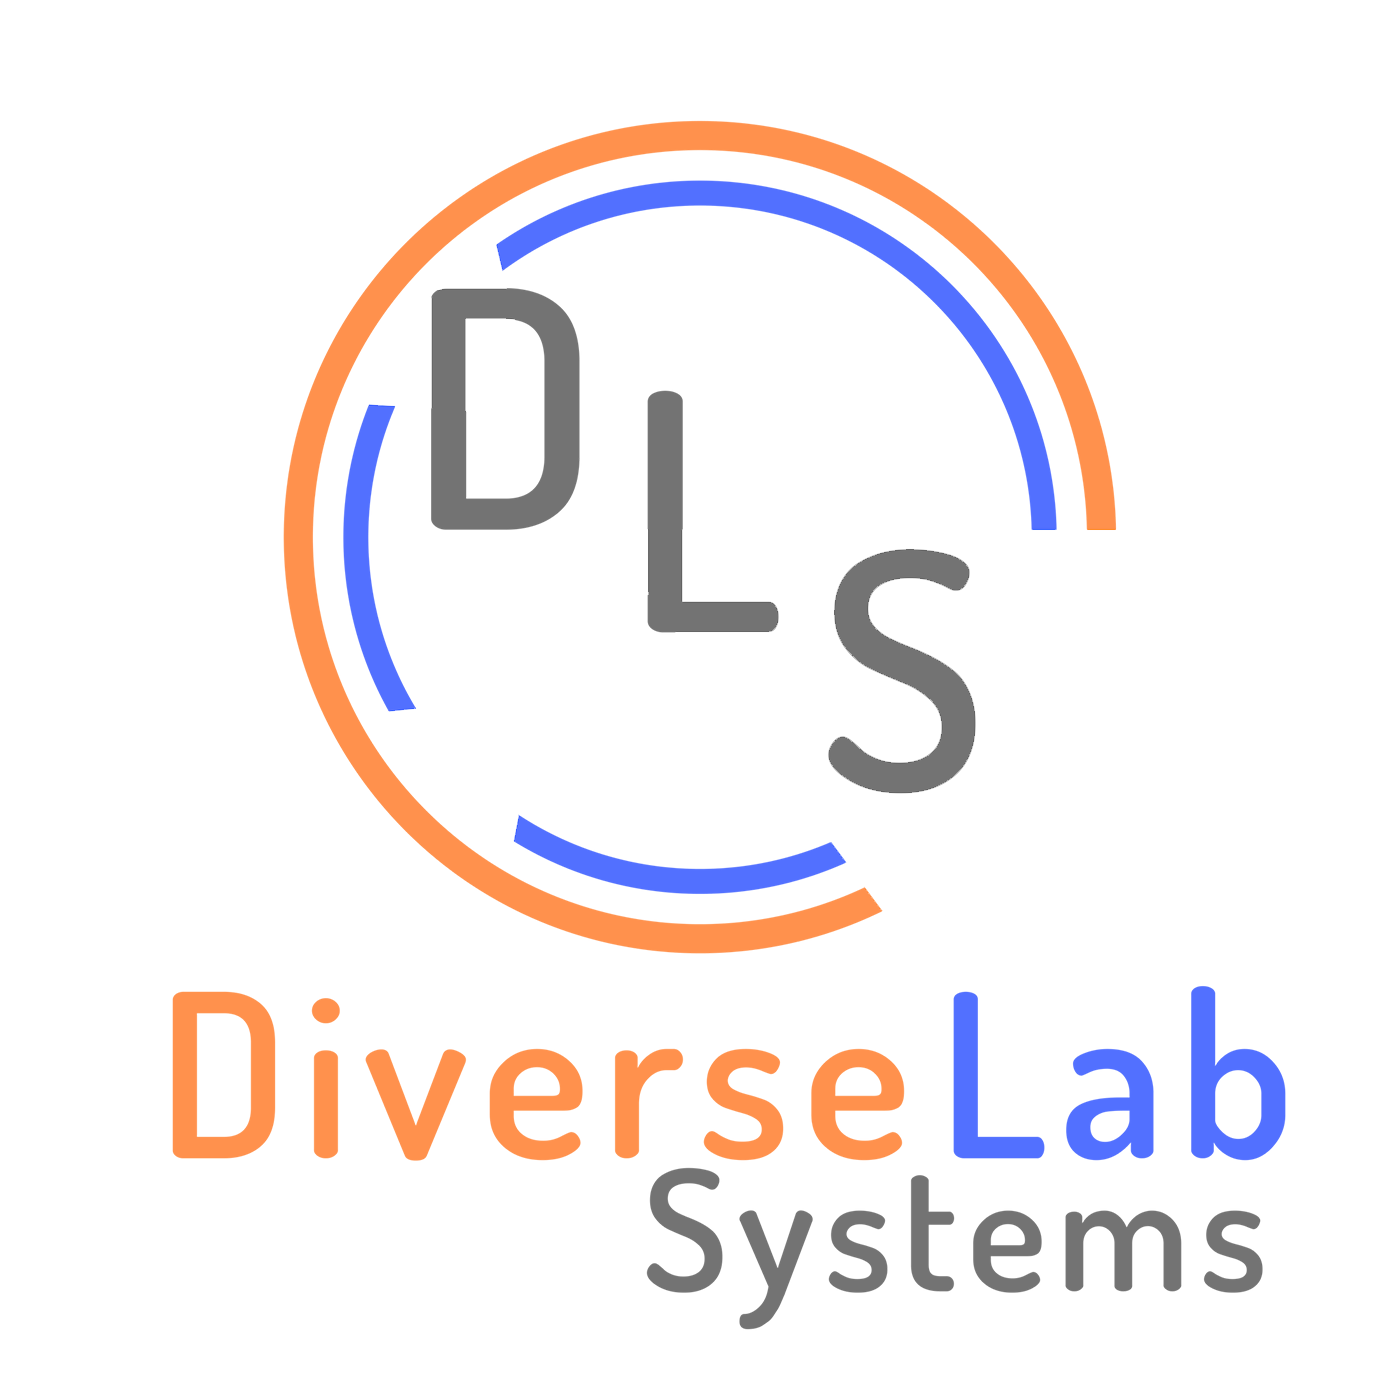 Diverse Lab Systems